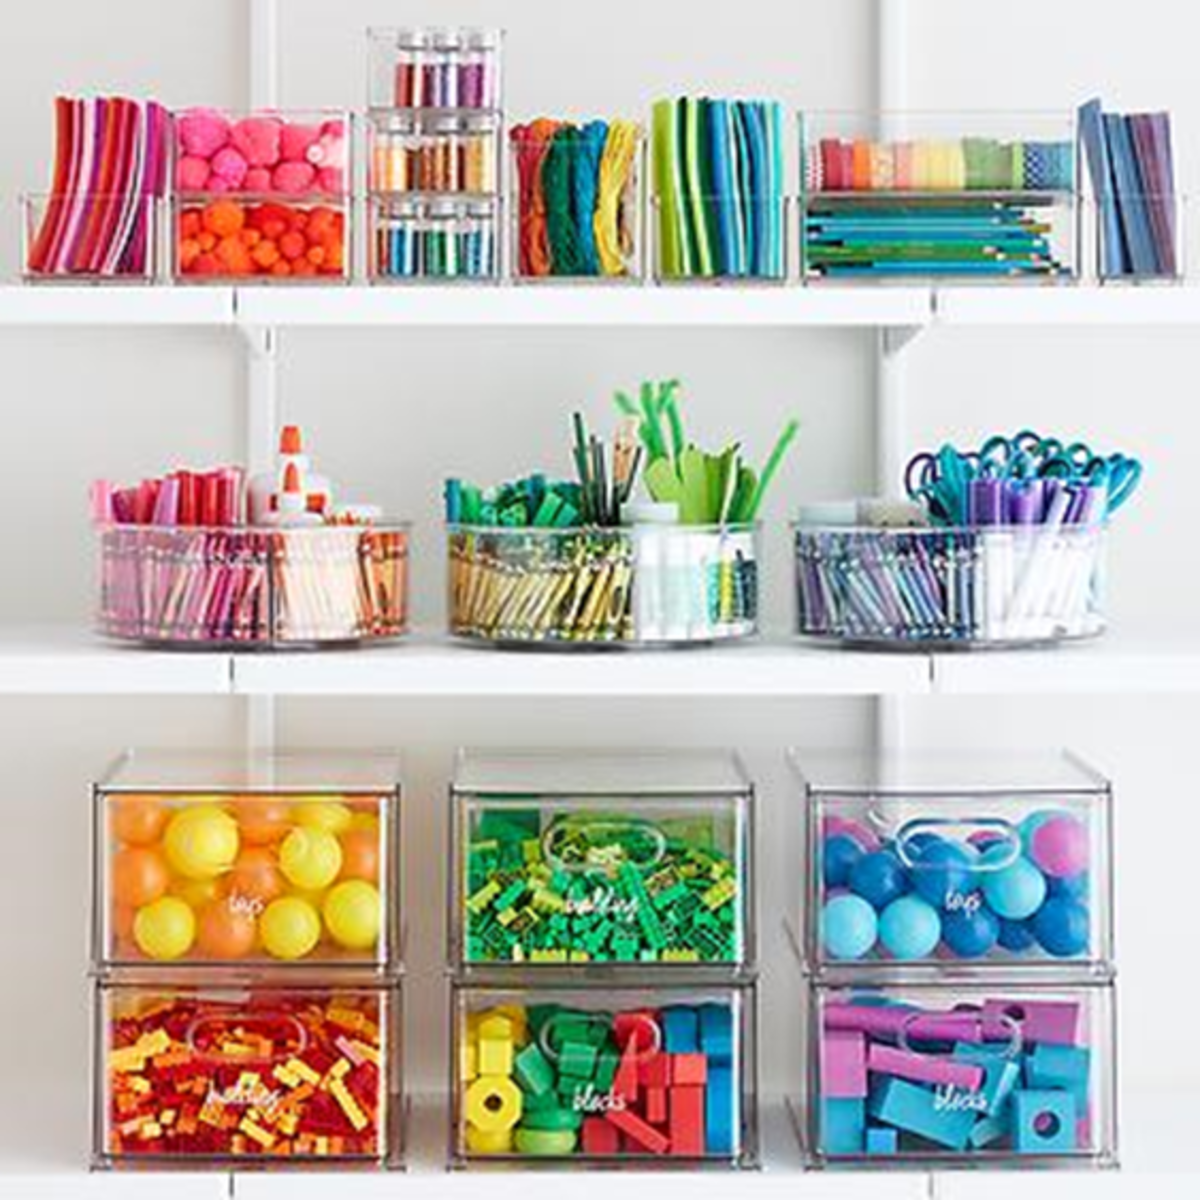 Explore Math at Home: Easy Resources for Parents and Kids